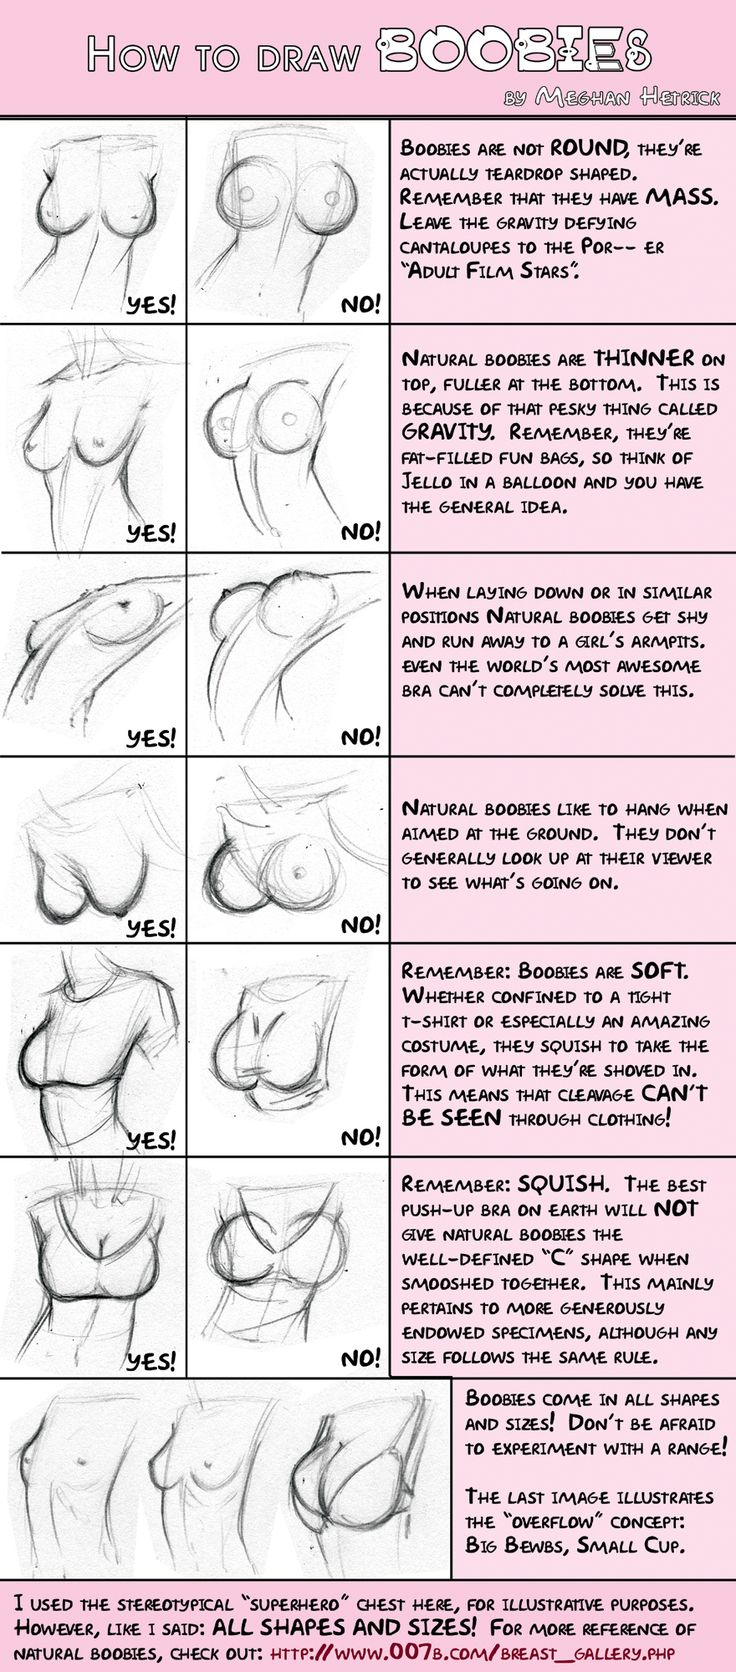 I wish every comics artist was required to (at least) read this.  They're not melons, boys.